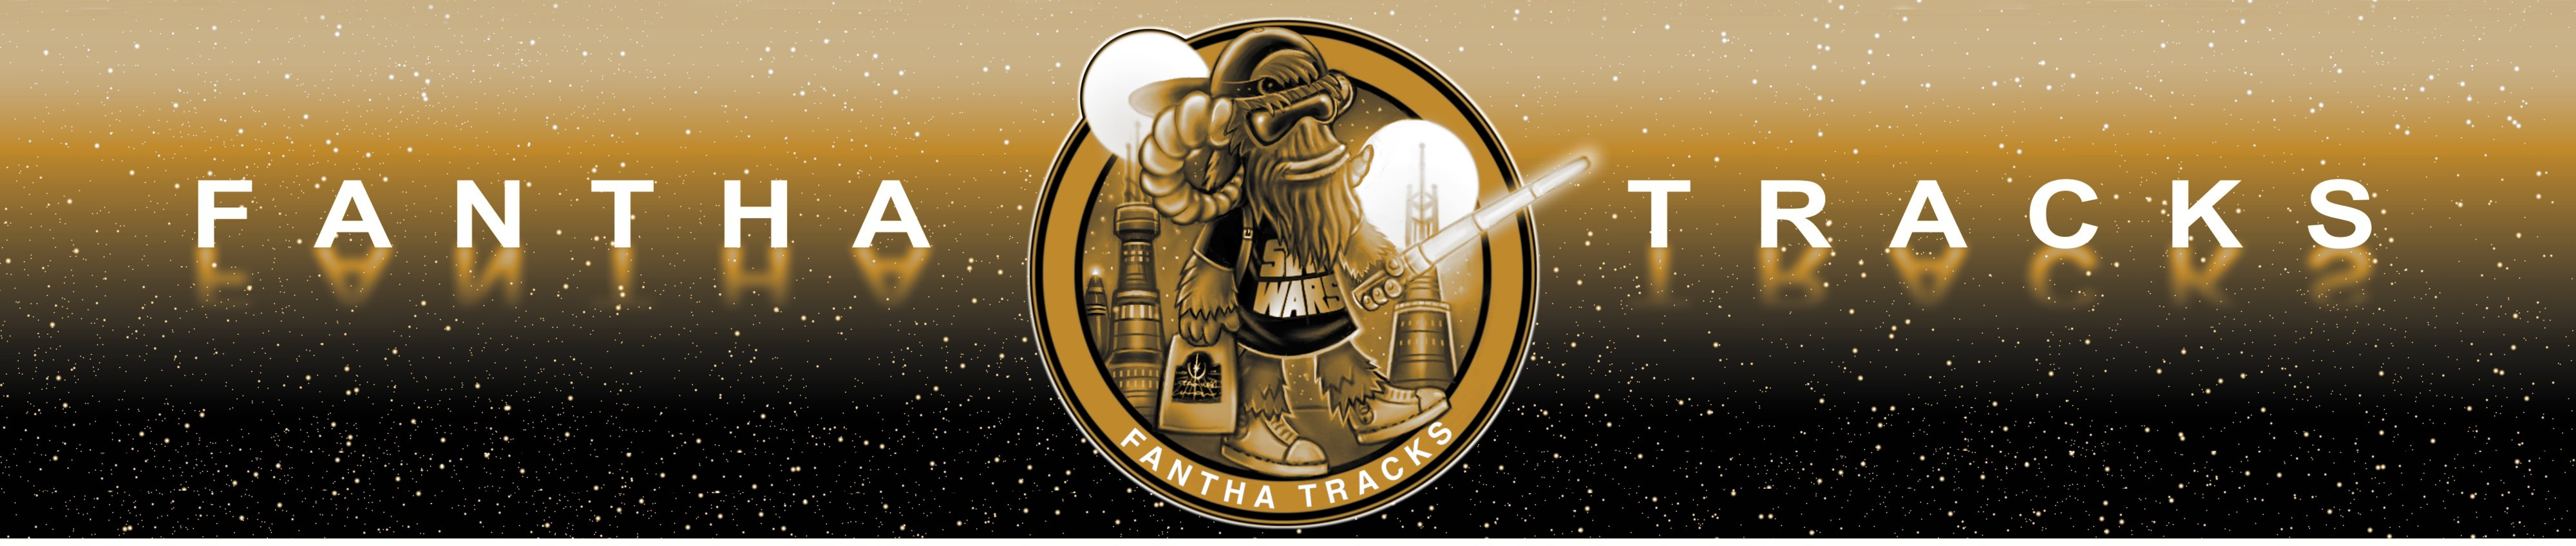 FANTHA TRACKS .com